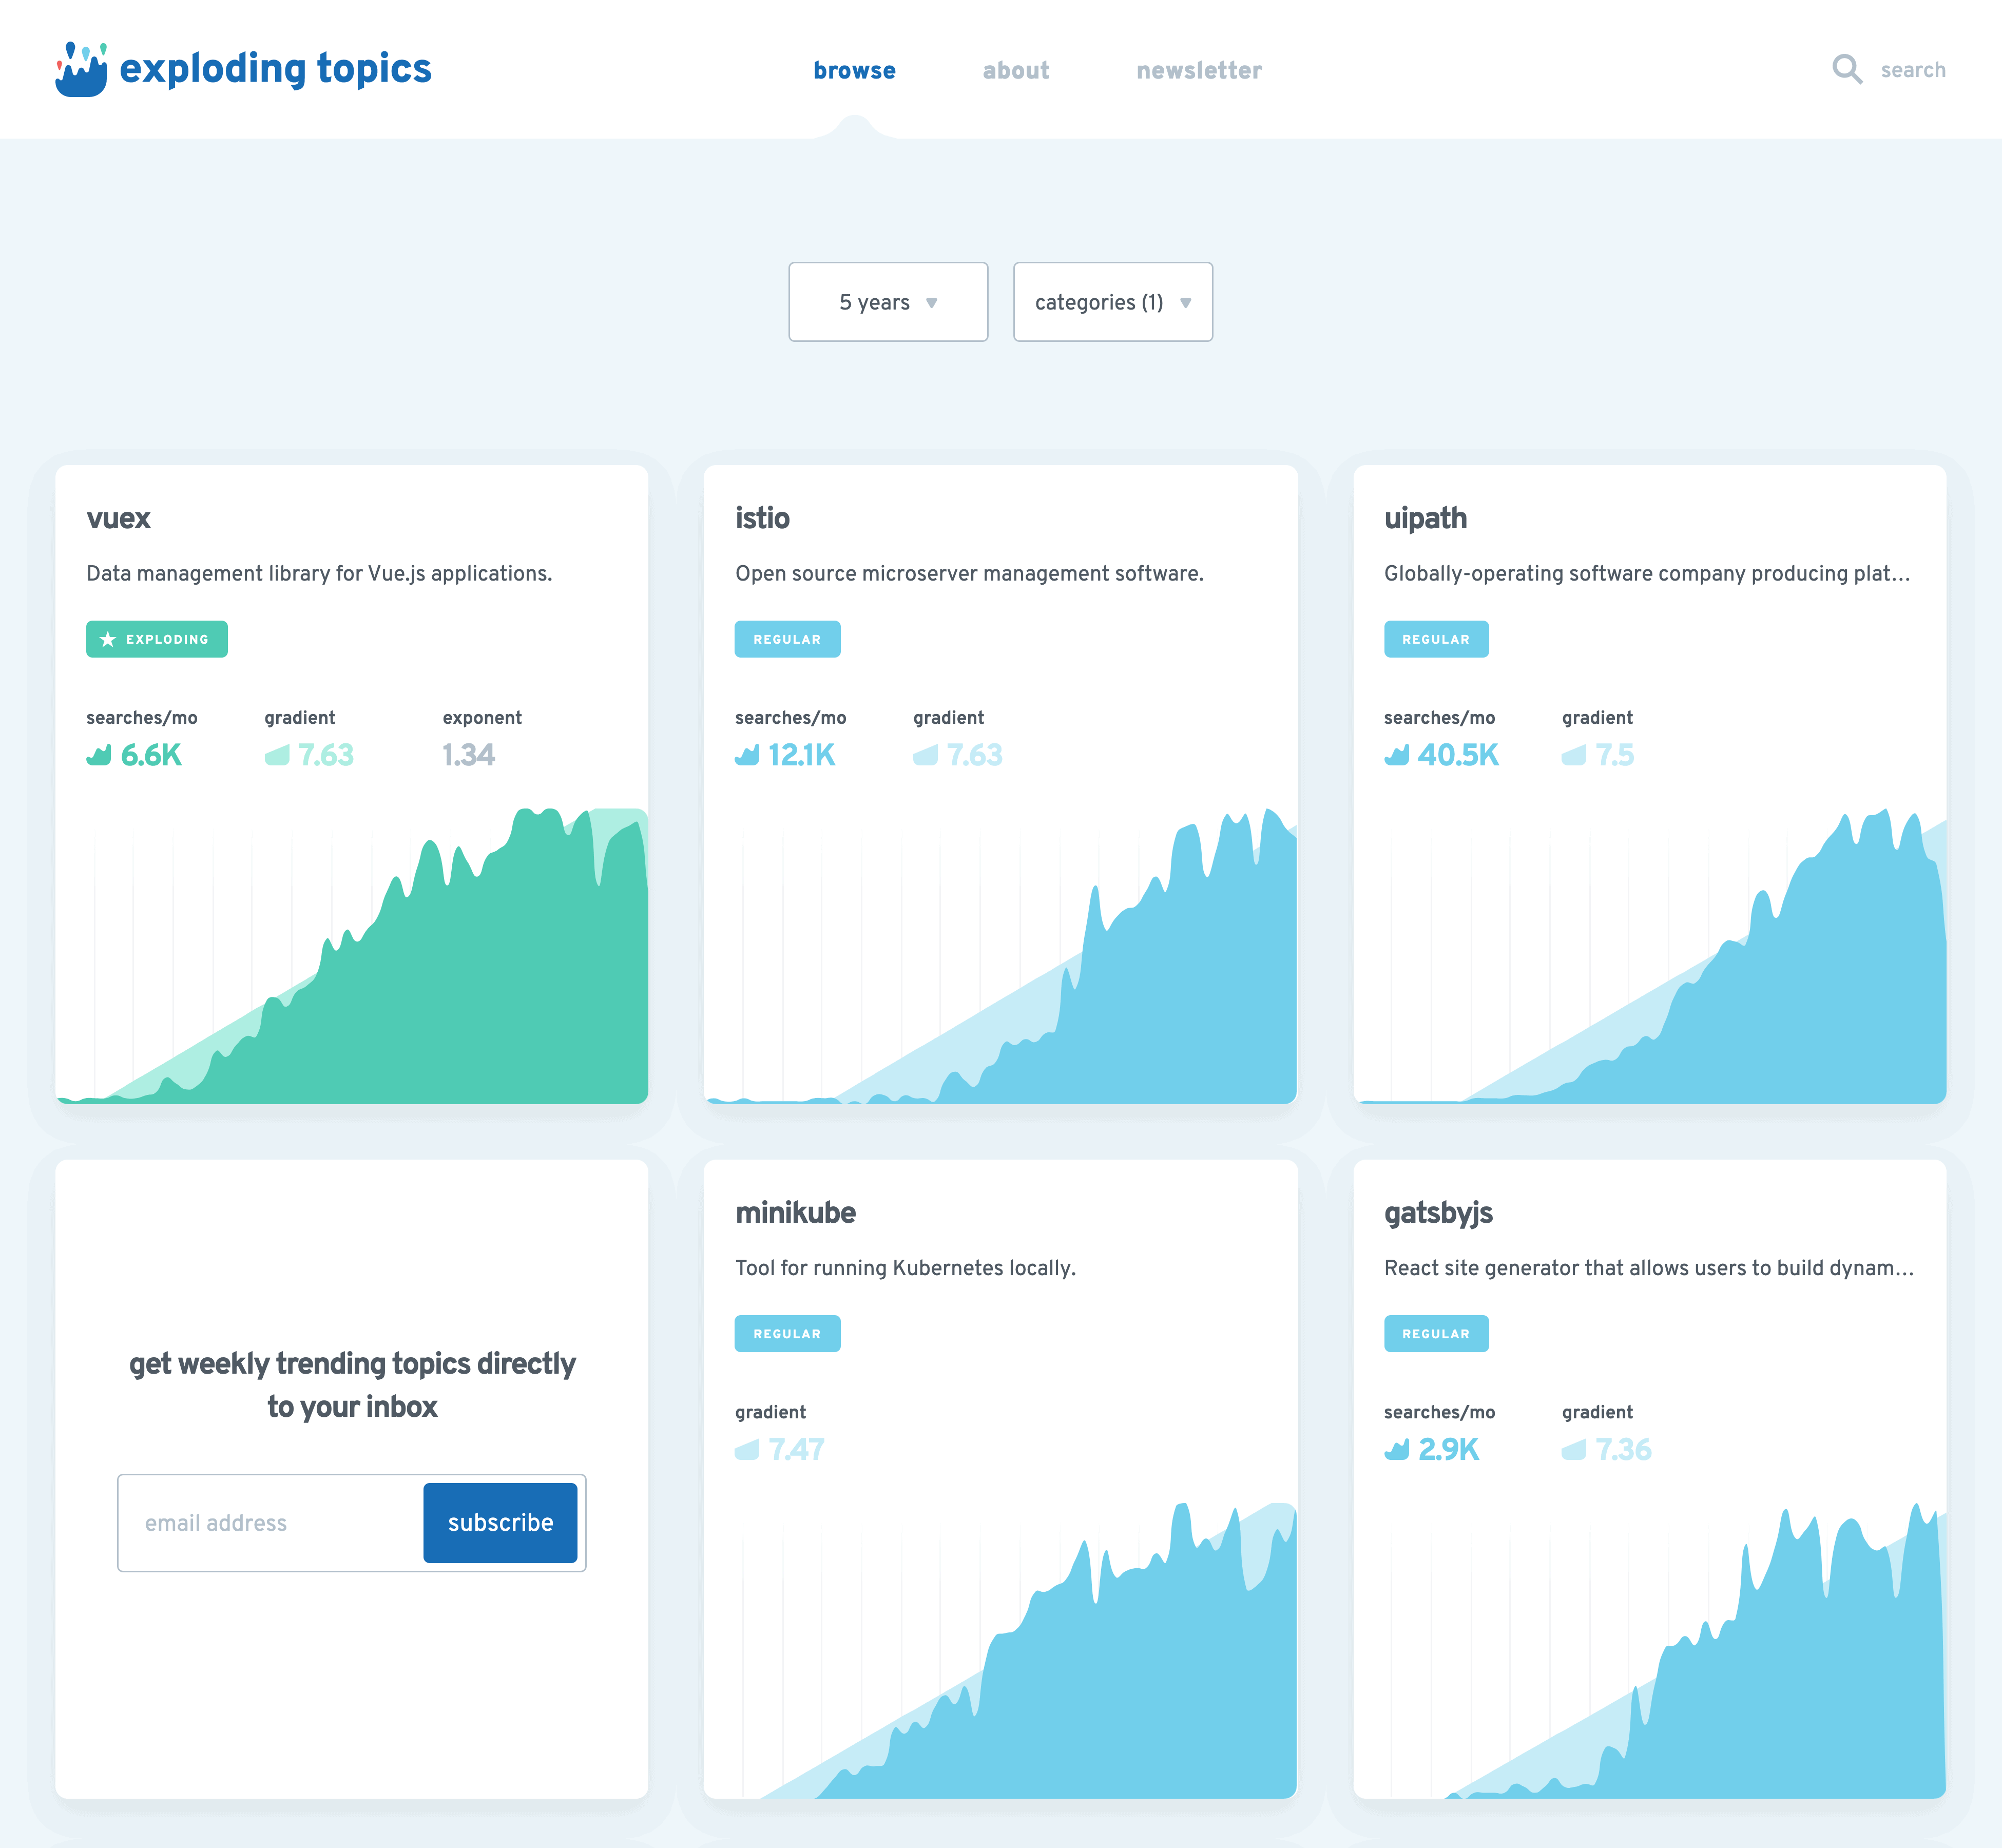 exploding topics Category Page